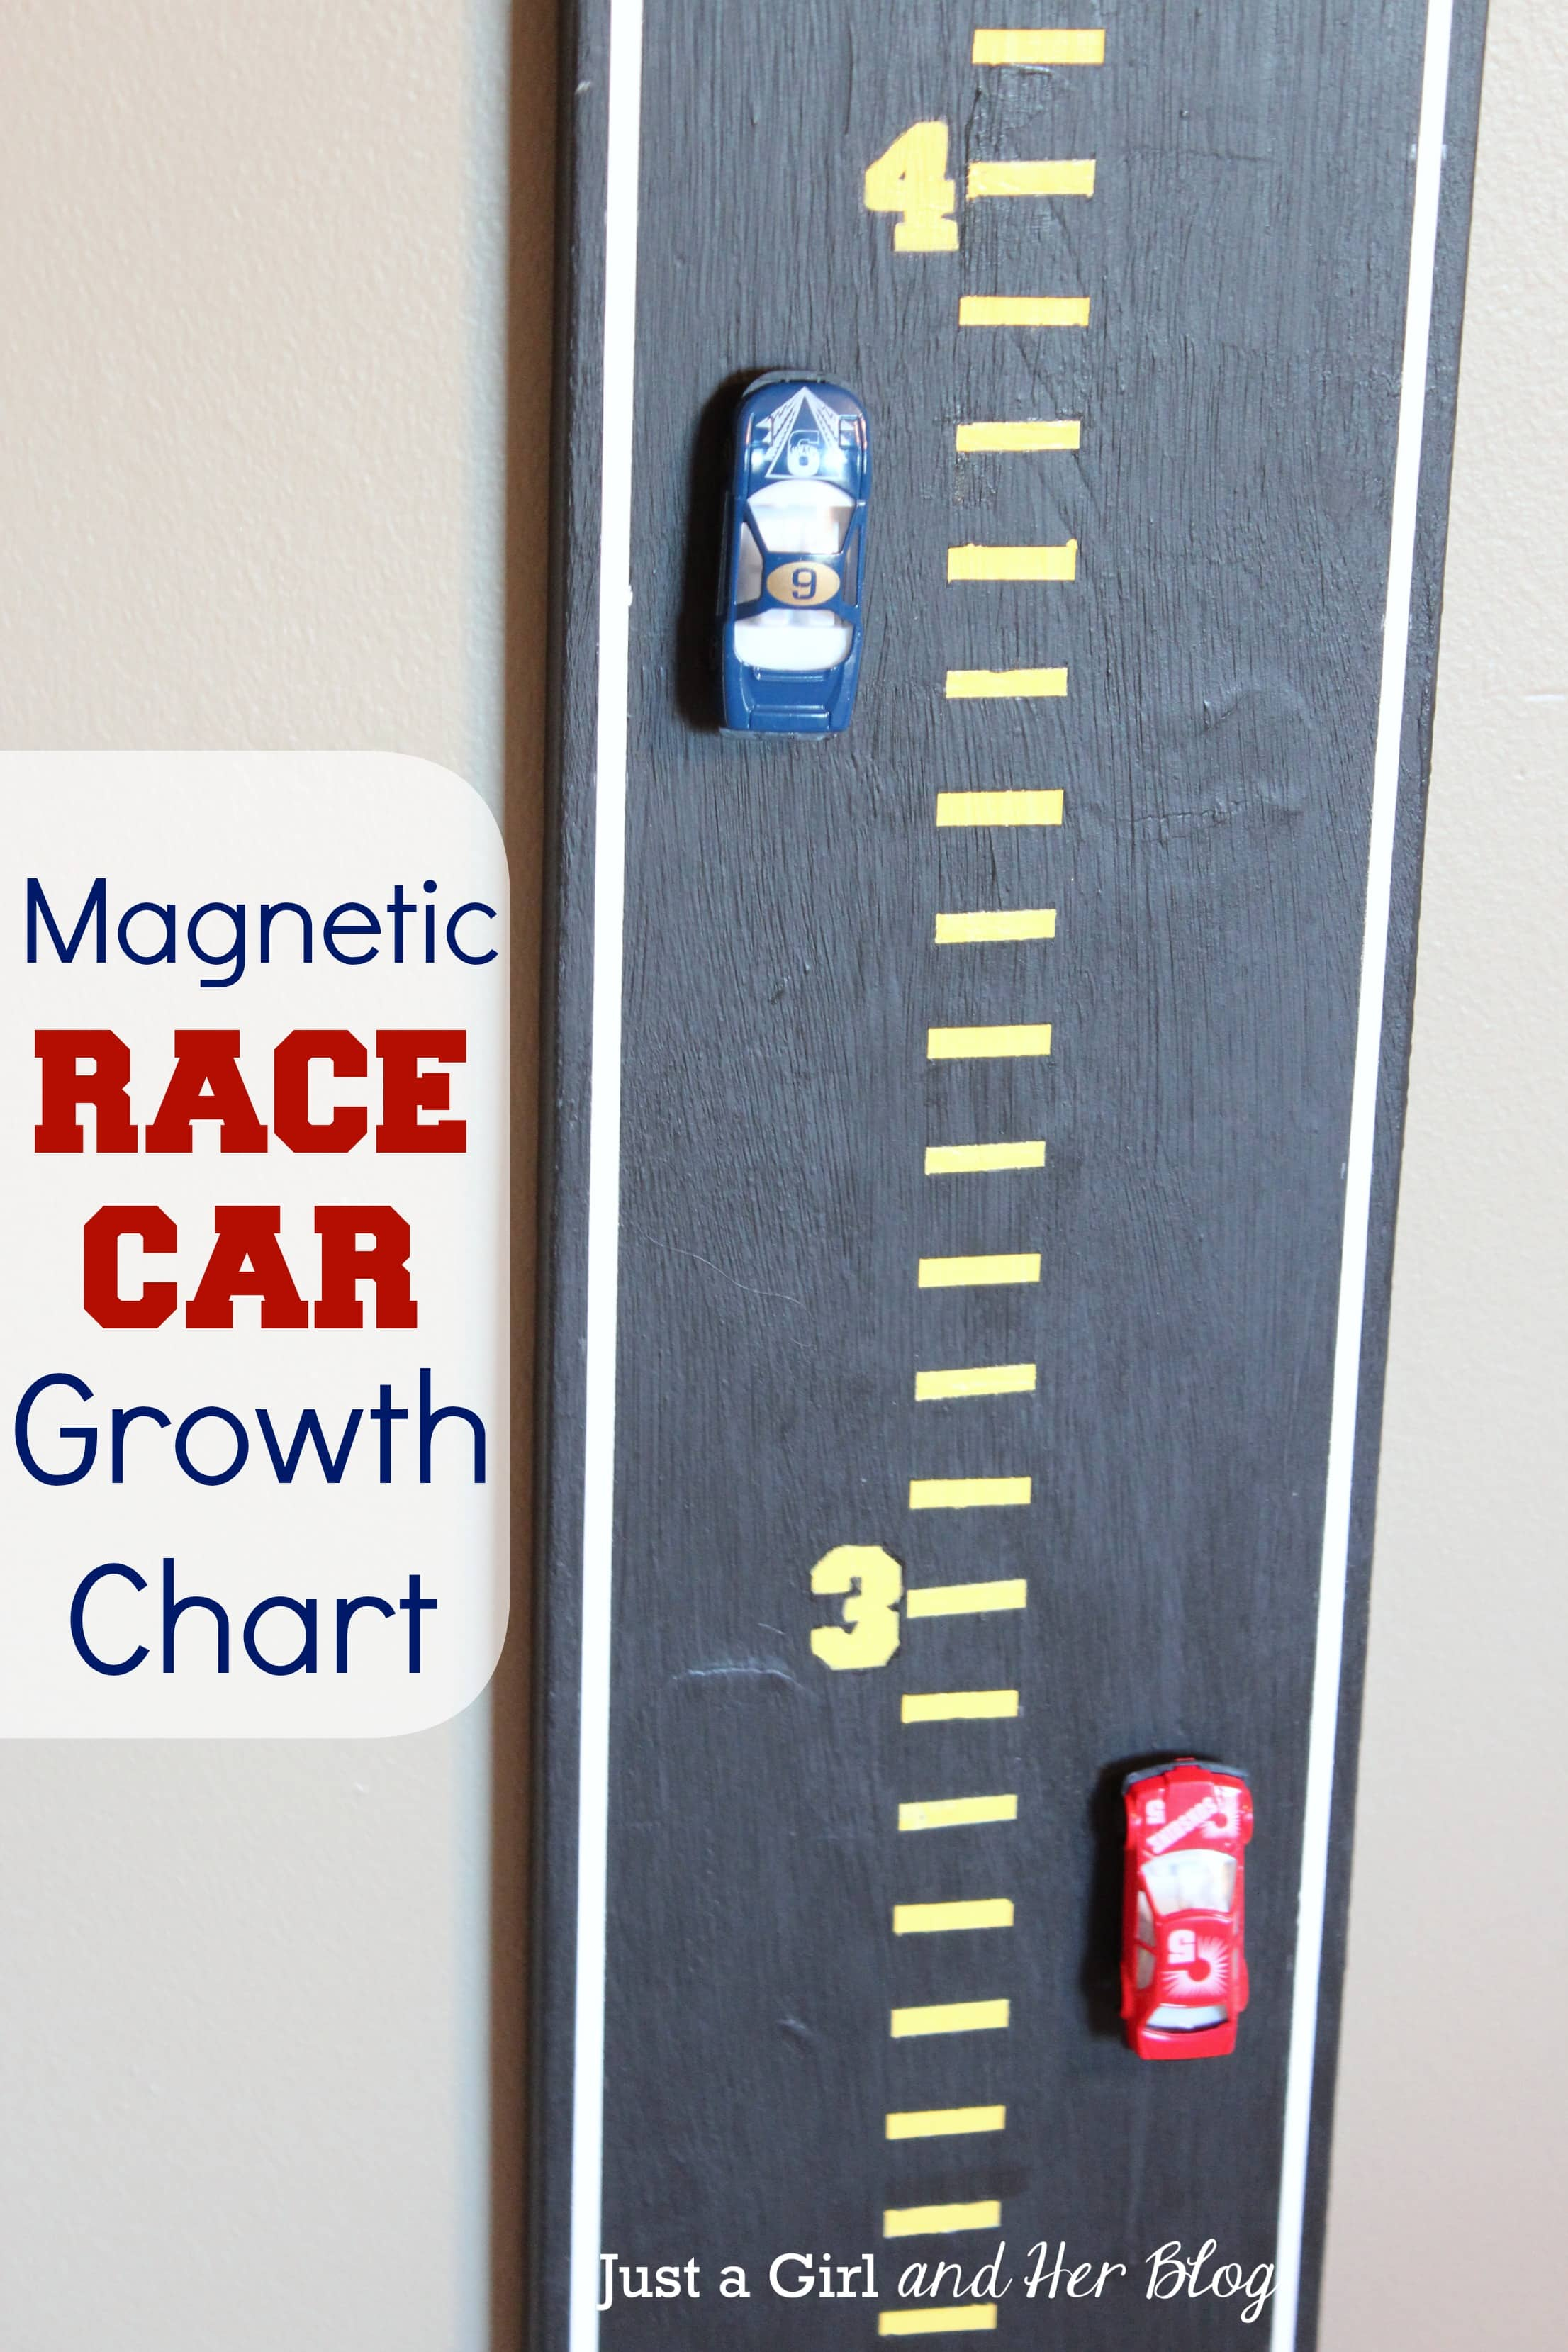 Magnetic race car growth chart just a girl and her blog magnetic race car growth chart by just a girl and her blog nvjuhfo Images